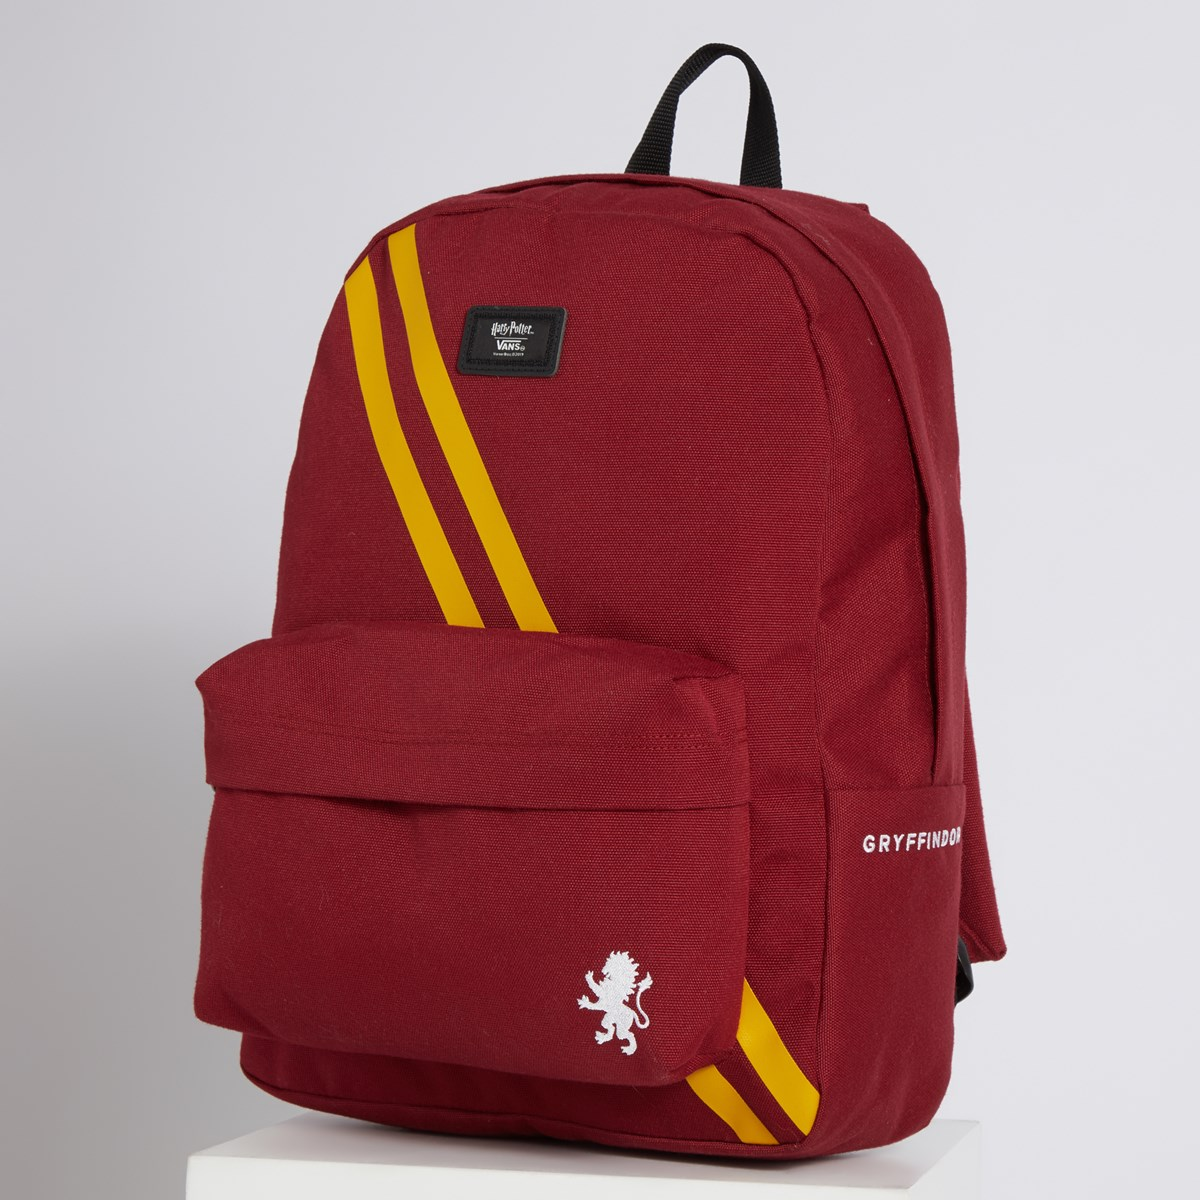 Sac à dos Harry Potter Gyffondor Old Skool III rouge